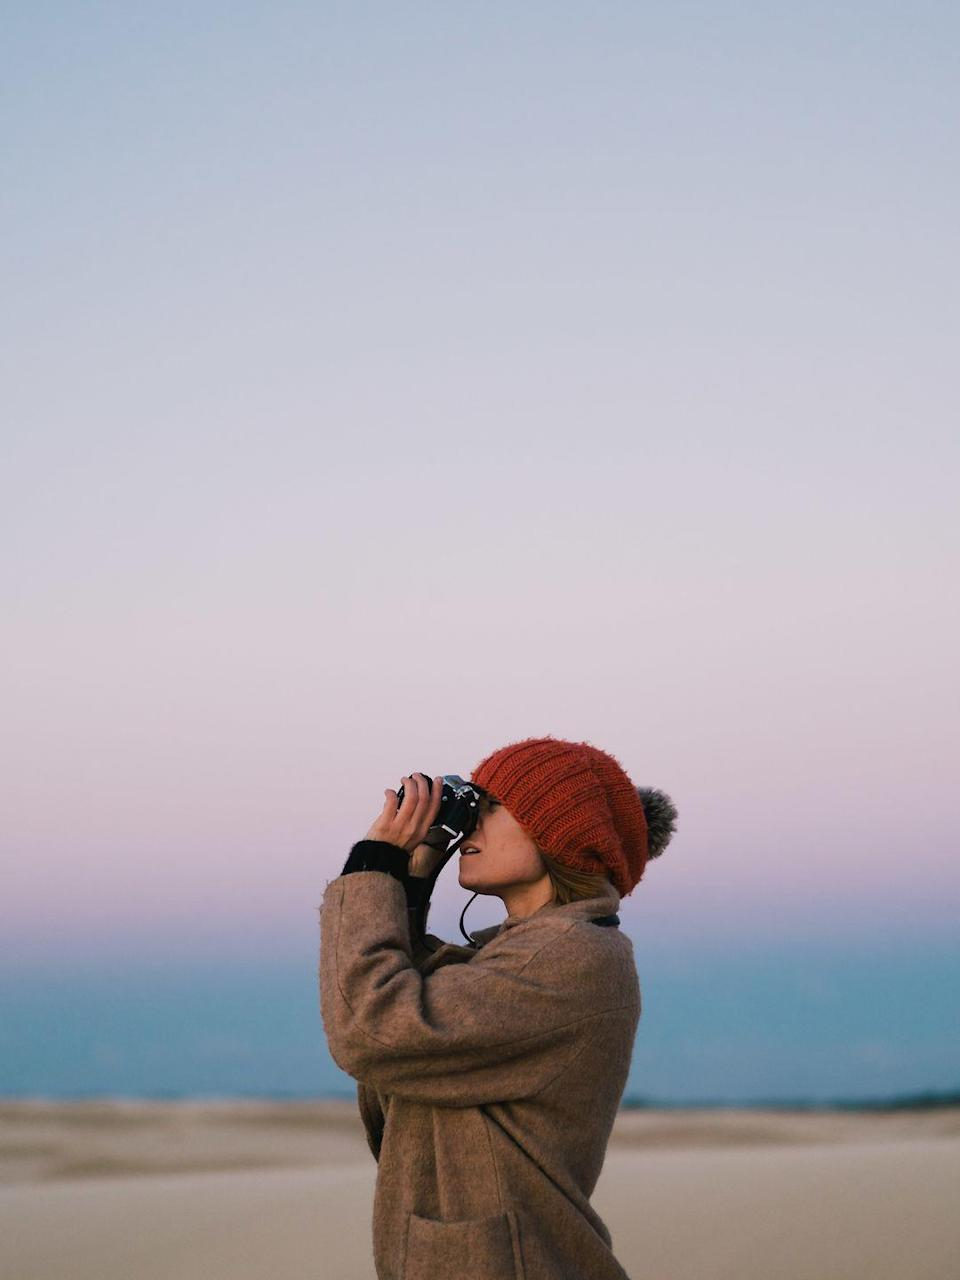 """<p>Whether you use a smartphone, mirrorless or DSLR camera, this course will teach you various photography styles including that of product, low light, sports, action and street, as well as understanding how cameras work and what equipment you need. </p><p><strong>Duration</strong>: 22 hours on-demand video</p><p>£15.99</p><p><a class=""""link rapid-noclick-resp"""" href=""""https://go.redirectingat.com?id=127X1599956&url=https%3A%2F%2Fwww.udemy.com%2Fcourse%2Fphotography-masterclass-complete-guide-to-photography%2F&sref=https%3A%2F%2Fwww.harpersbazaar.com%2Fuk%2Fculture%2Flifestyle_homes%2Fg36582849%2Fbest-online-learning-courses%2F"""" rel=""""nofollow noopener"""" target=""""_blank"""" data-ylk=""""slk:BUY NOW"""">BUY NOW</a></p>"""